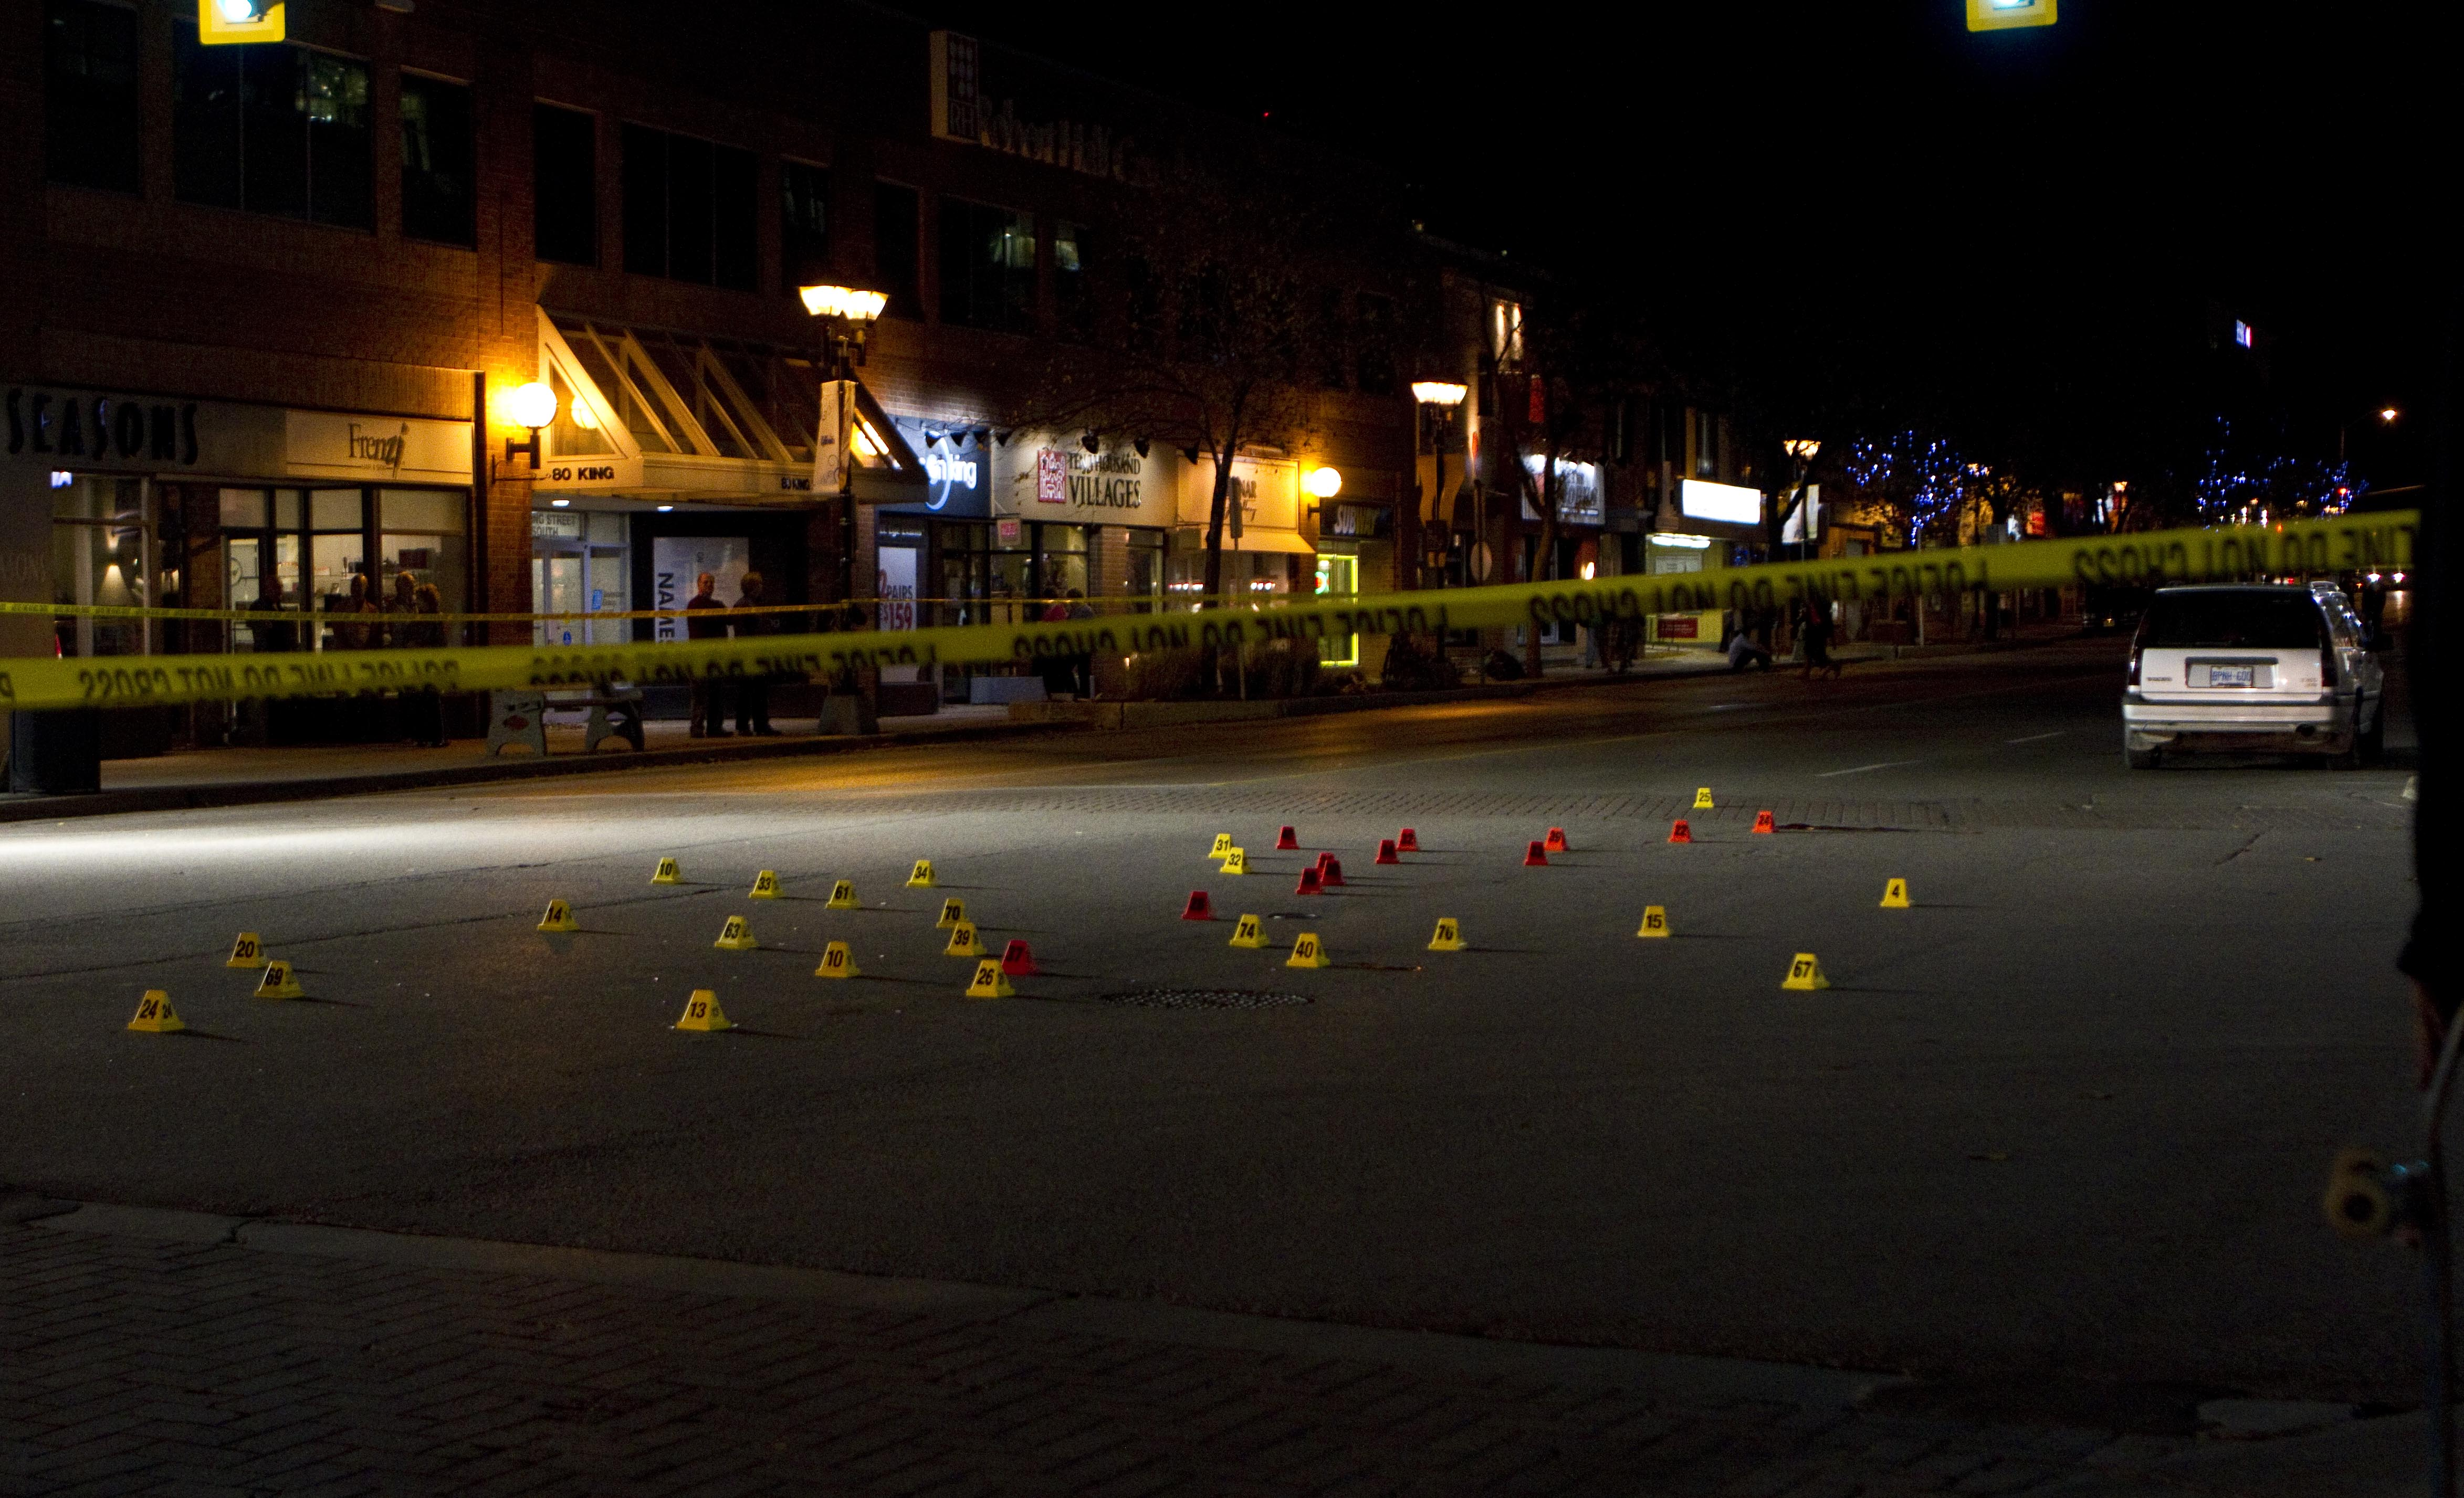 Student dies in Uptown Waterloo car accident – The Cord